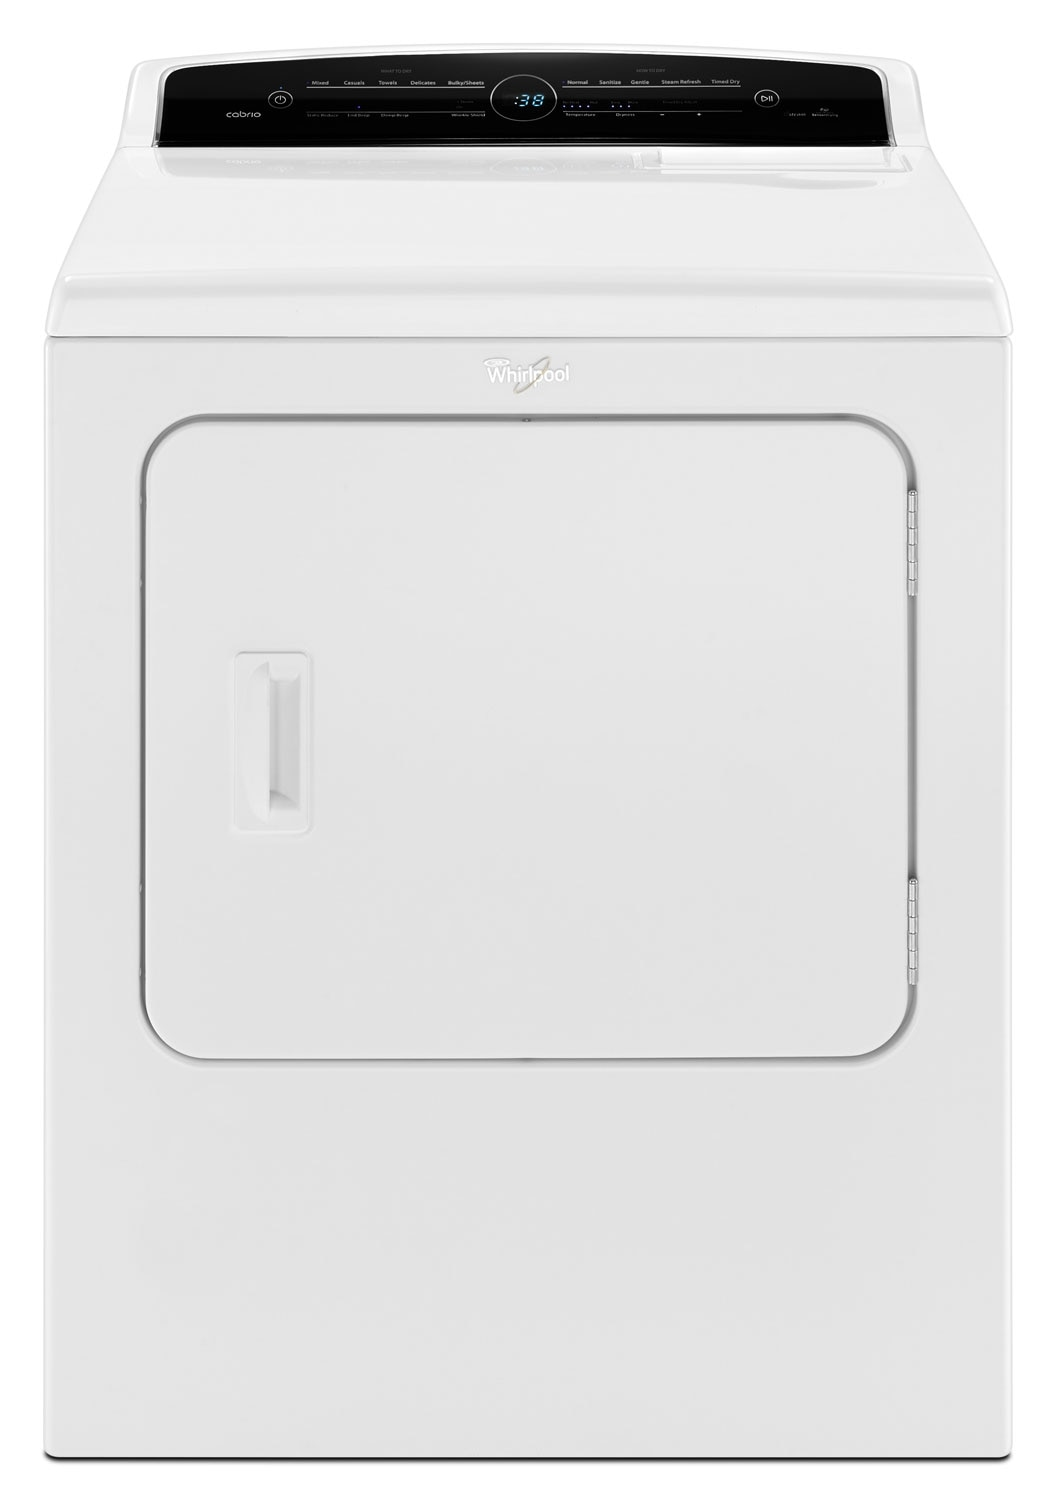 Whirlpool White Gas Dryer (7.0 Cu. Ft.) - WGD7300DW